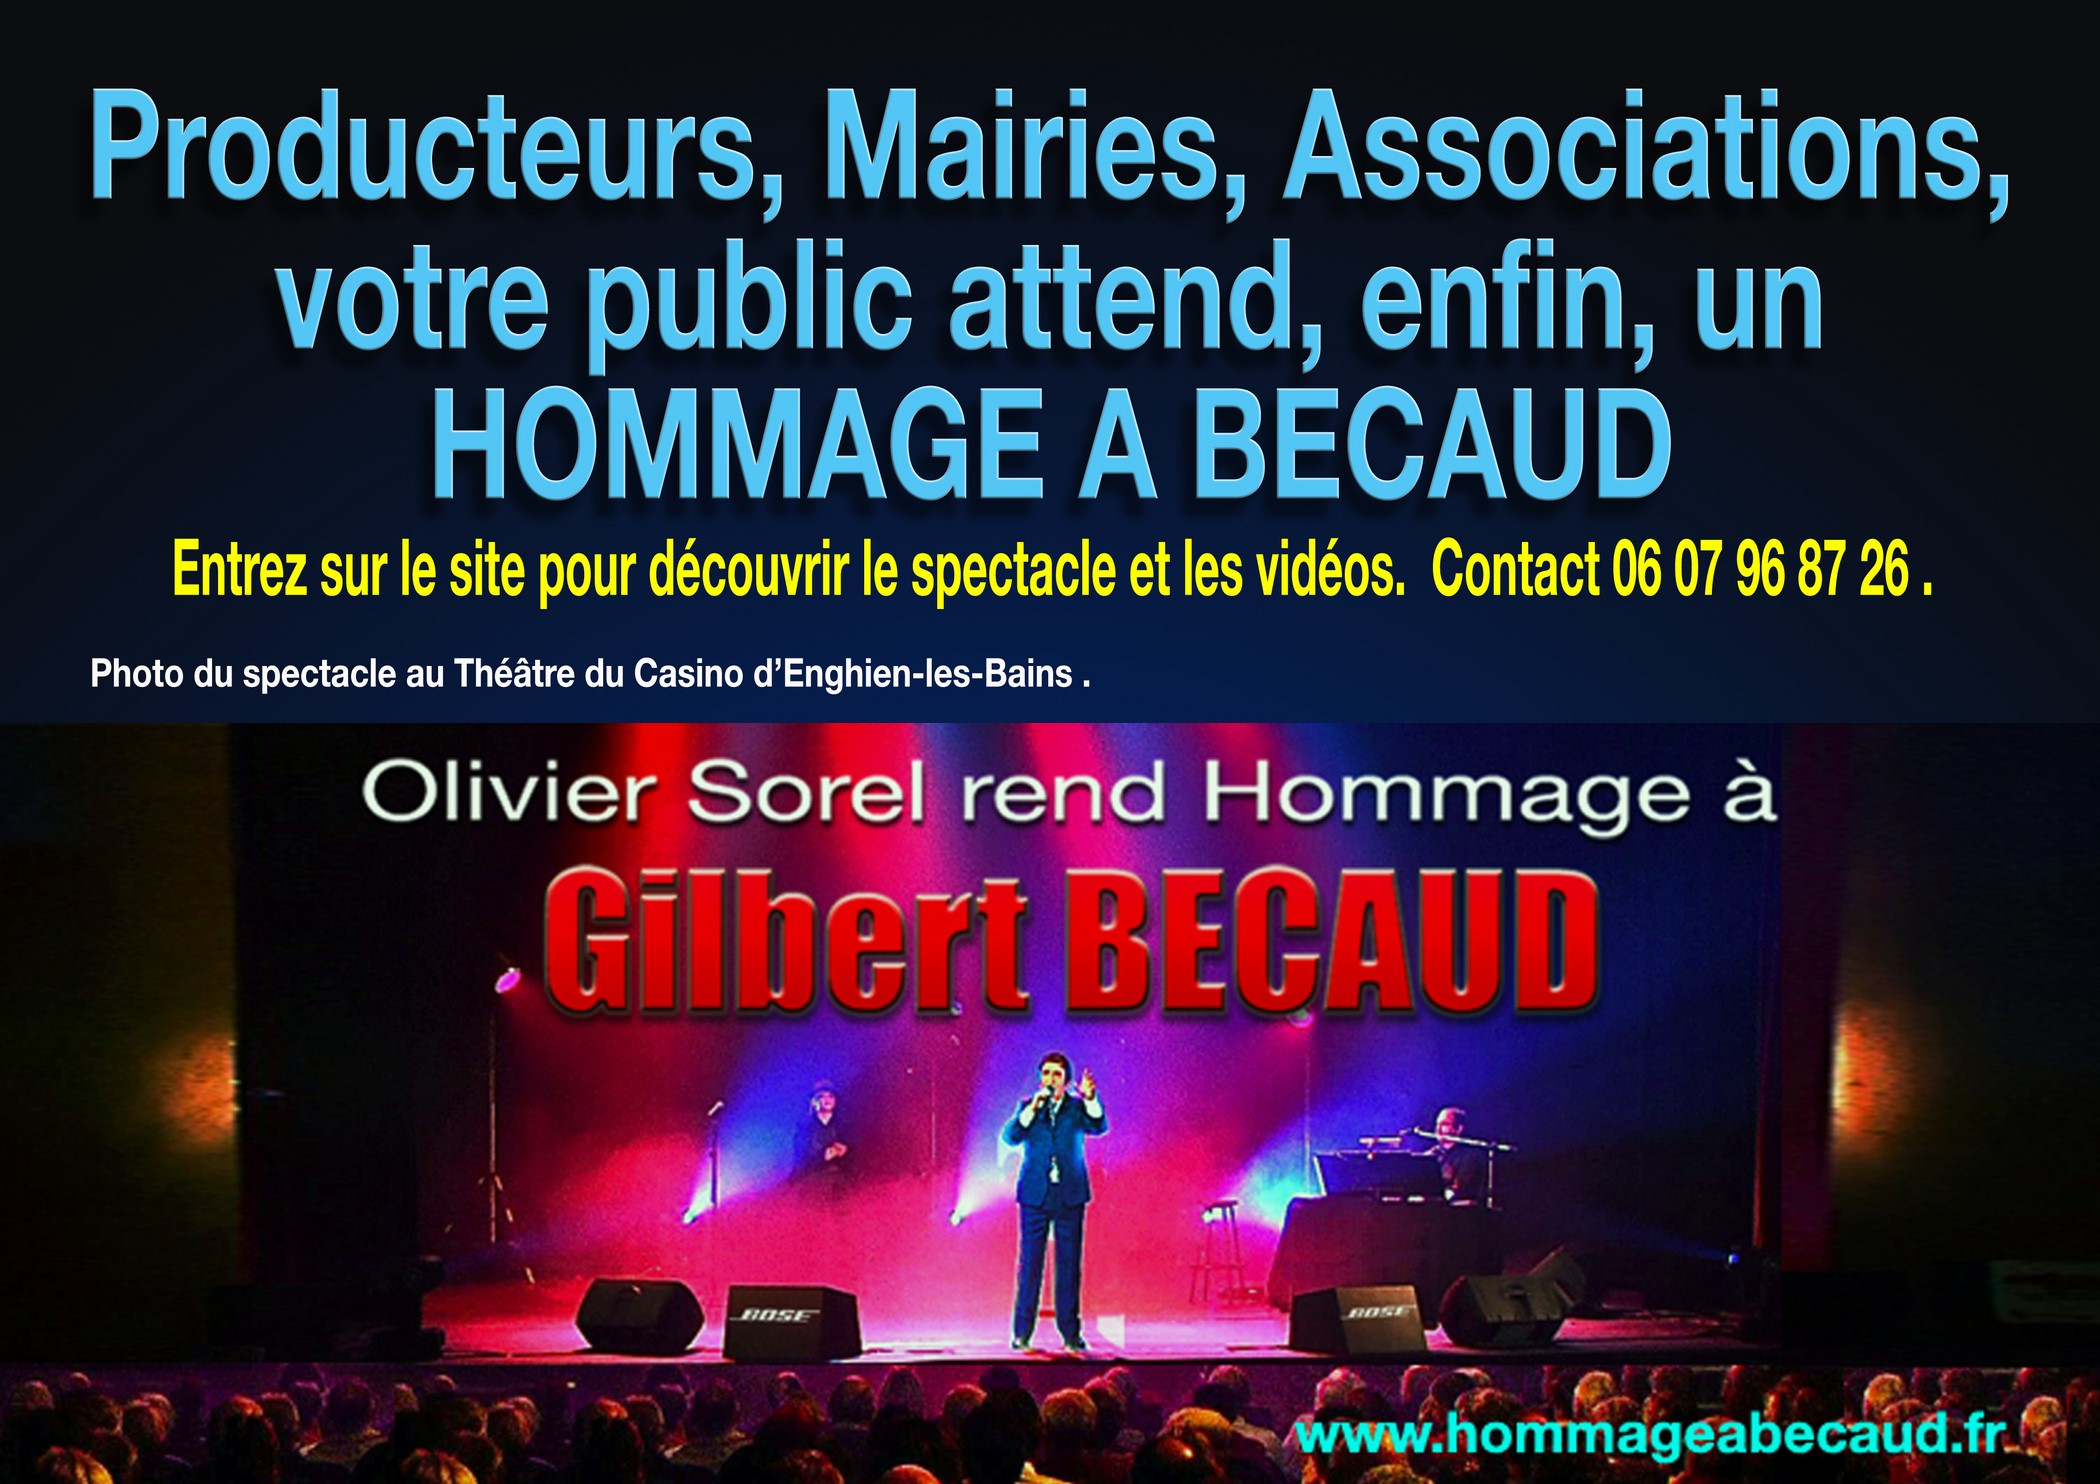 producteurs_mairies_associations_hommageabecaud